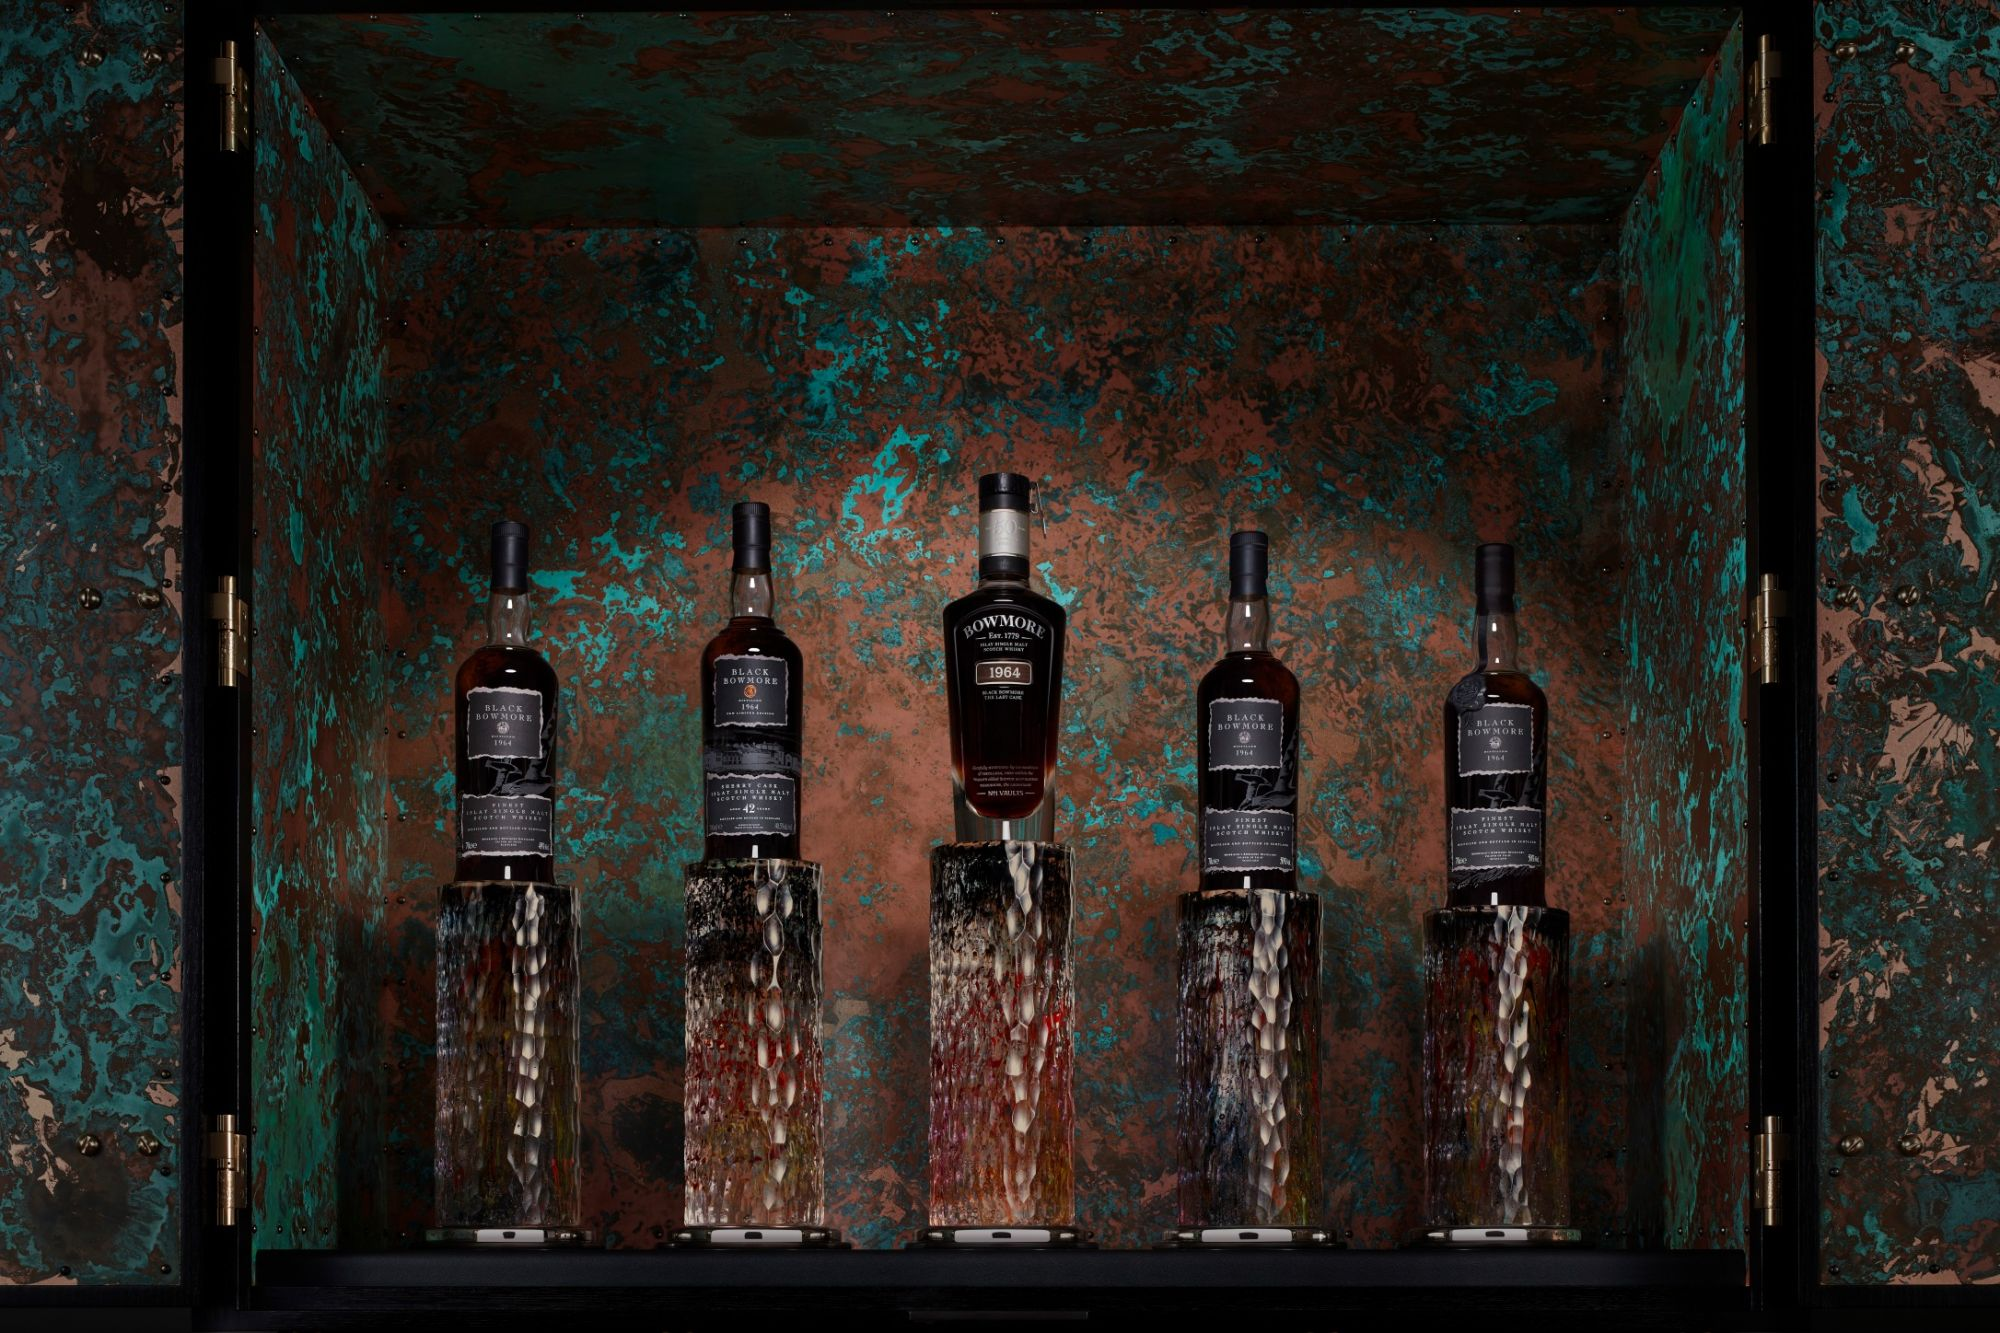 A Rare Black Bowmore Whisky Collection Will Be Offered At Sotheby's April 2021 Auction